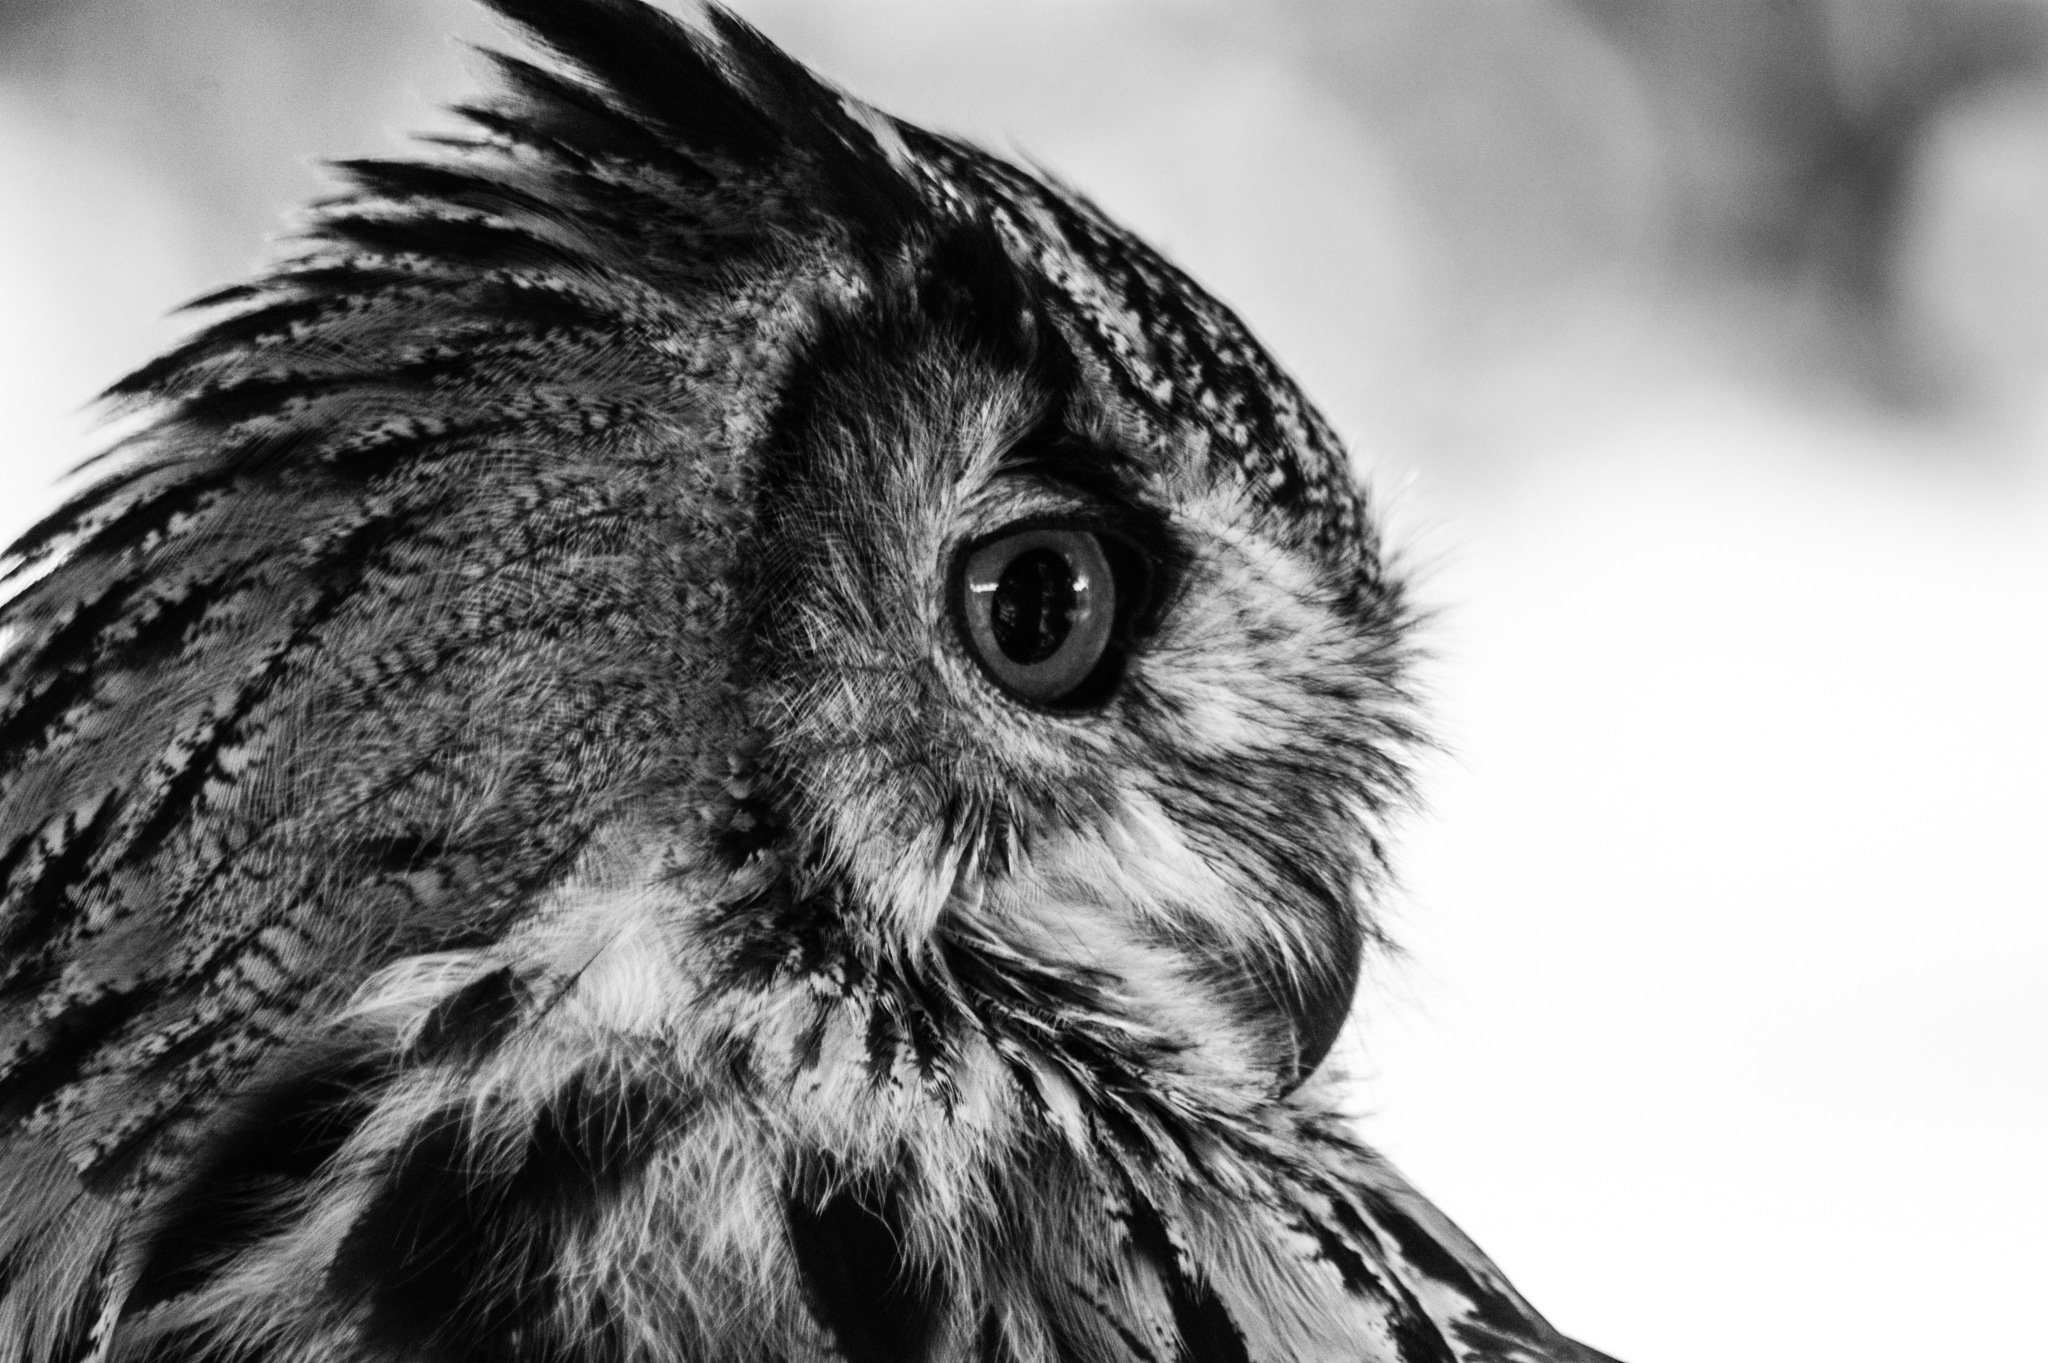 owl by Lisa  Smudge  Nature and Wildlife Photographer